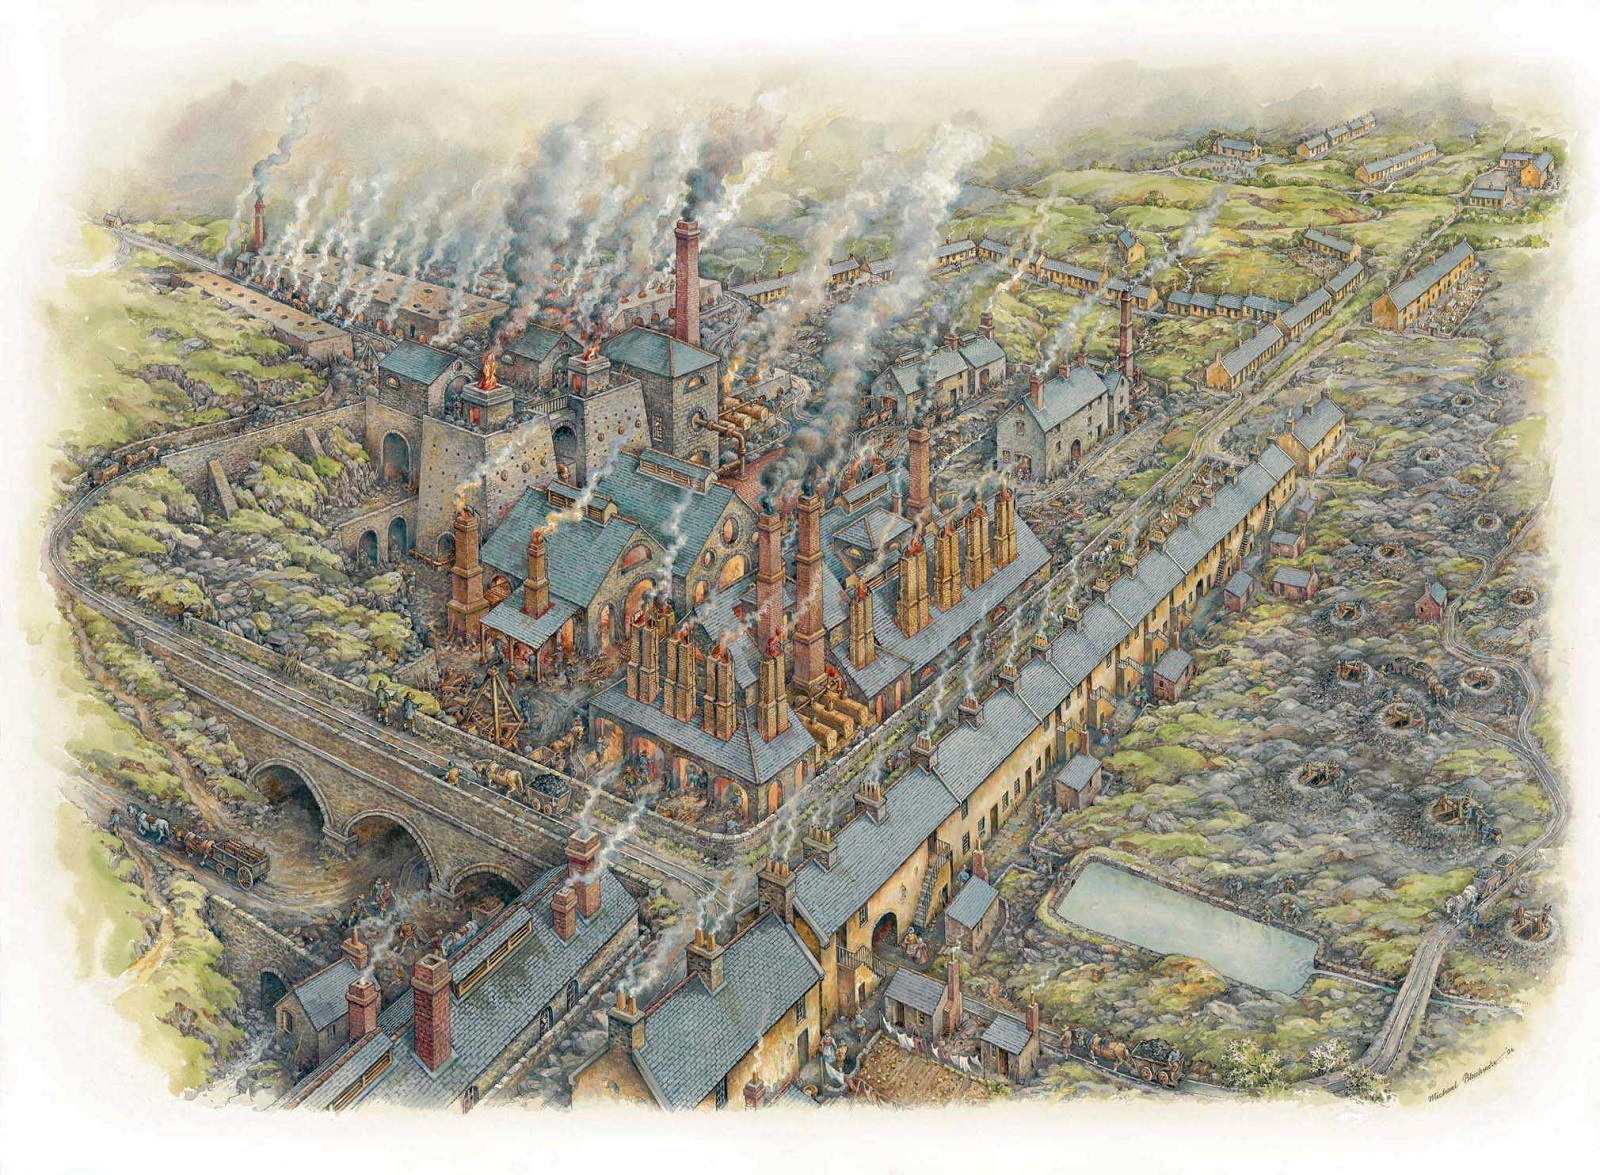 Drawing of industrial town